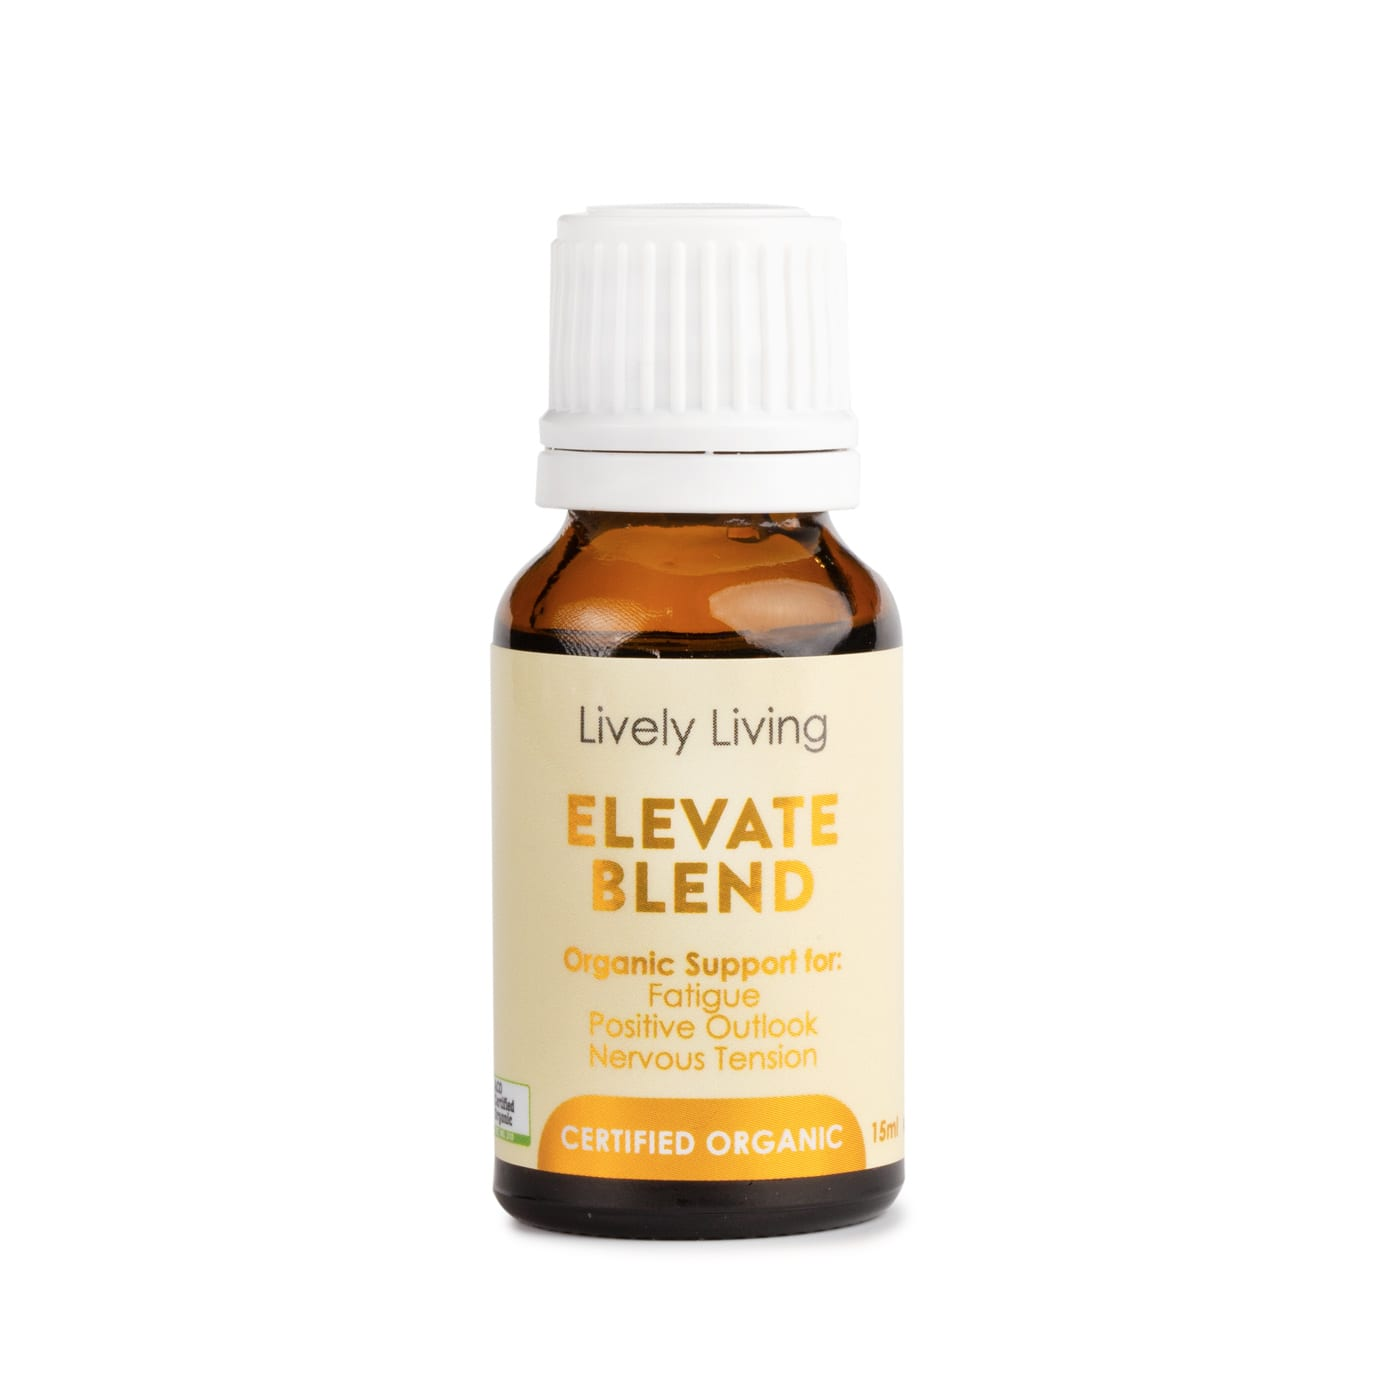 Lively Living Elevate Blend